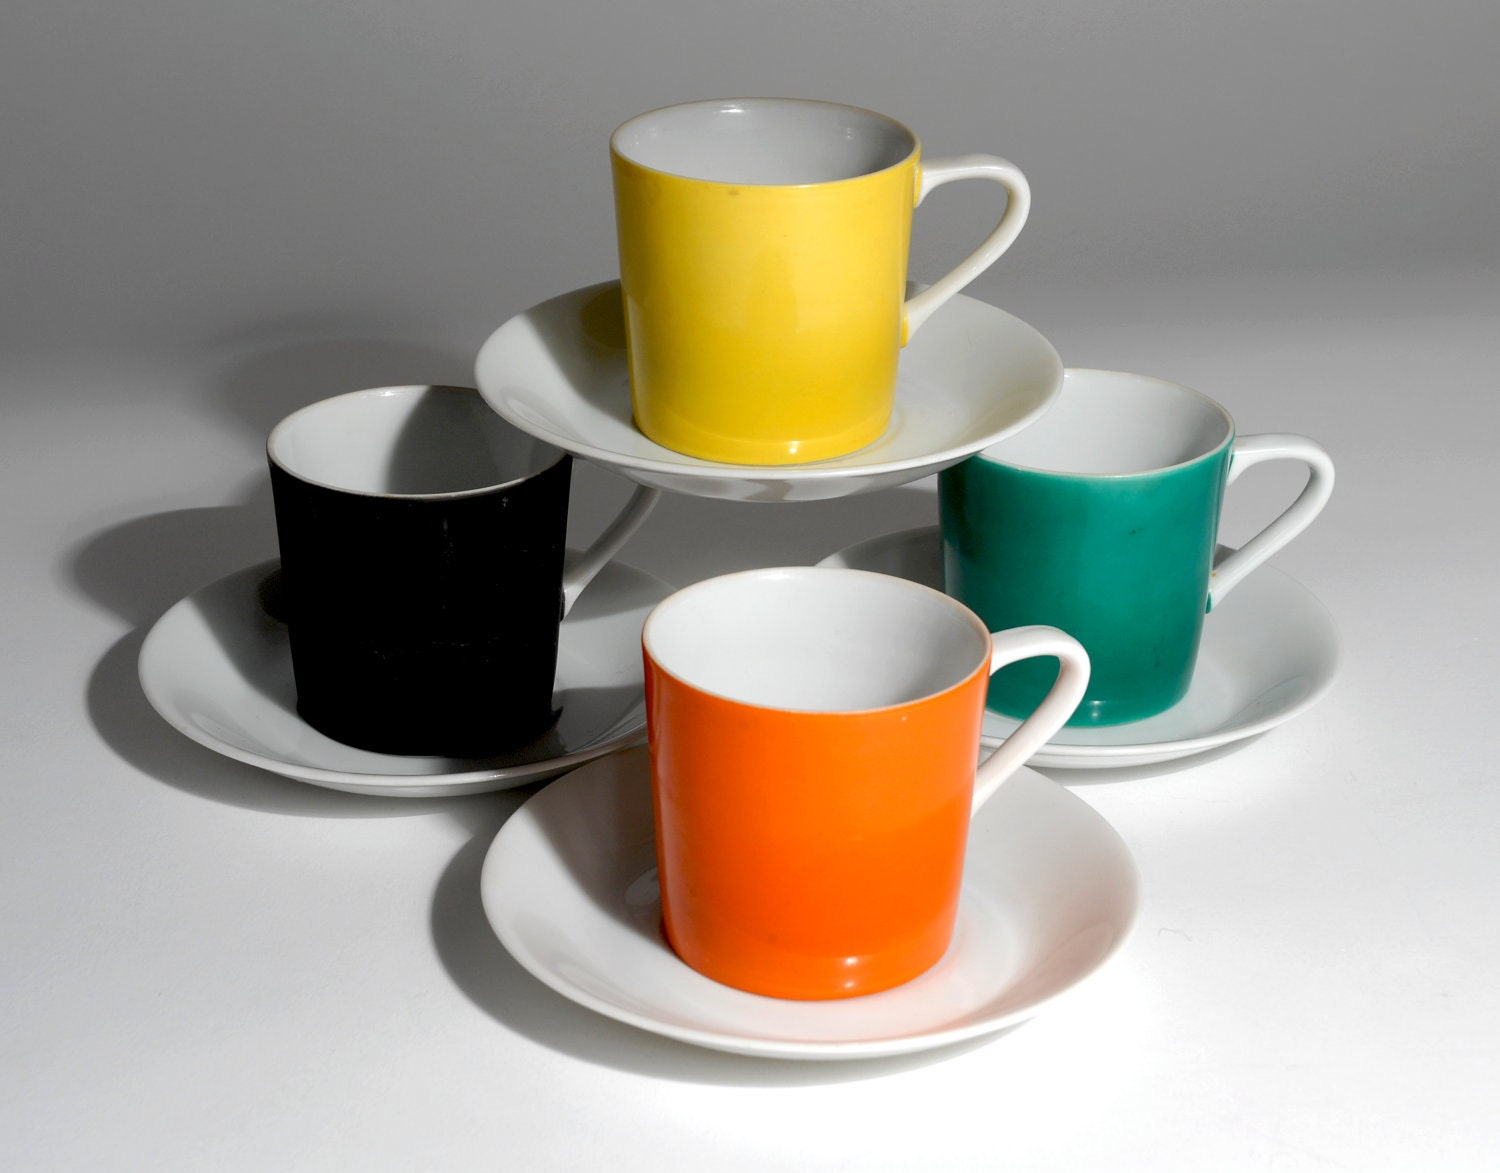 The Bormioli Rocco Easy Bar Cube Espresso Cups and Saucers are a stylish set in a modern shape. Made from tempered glass, each cup and saucer is extremely durable .